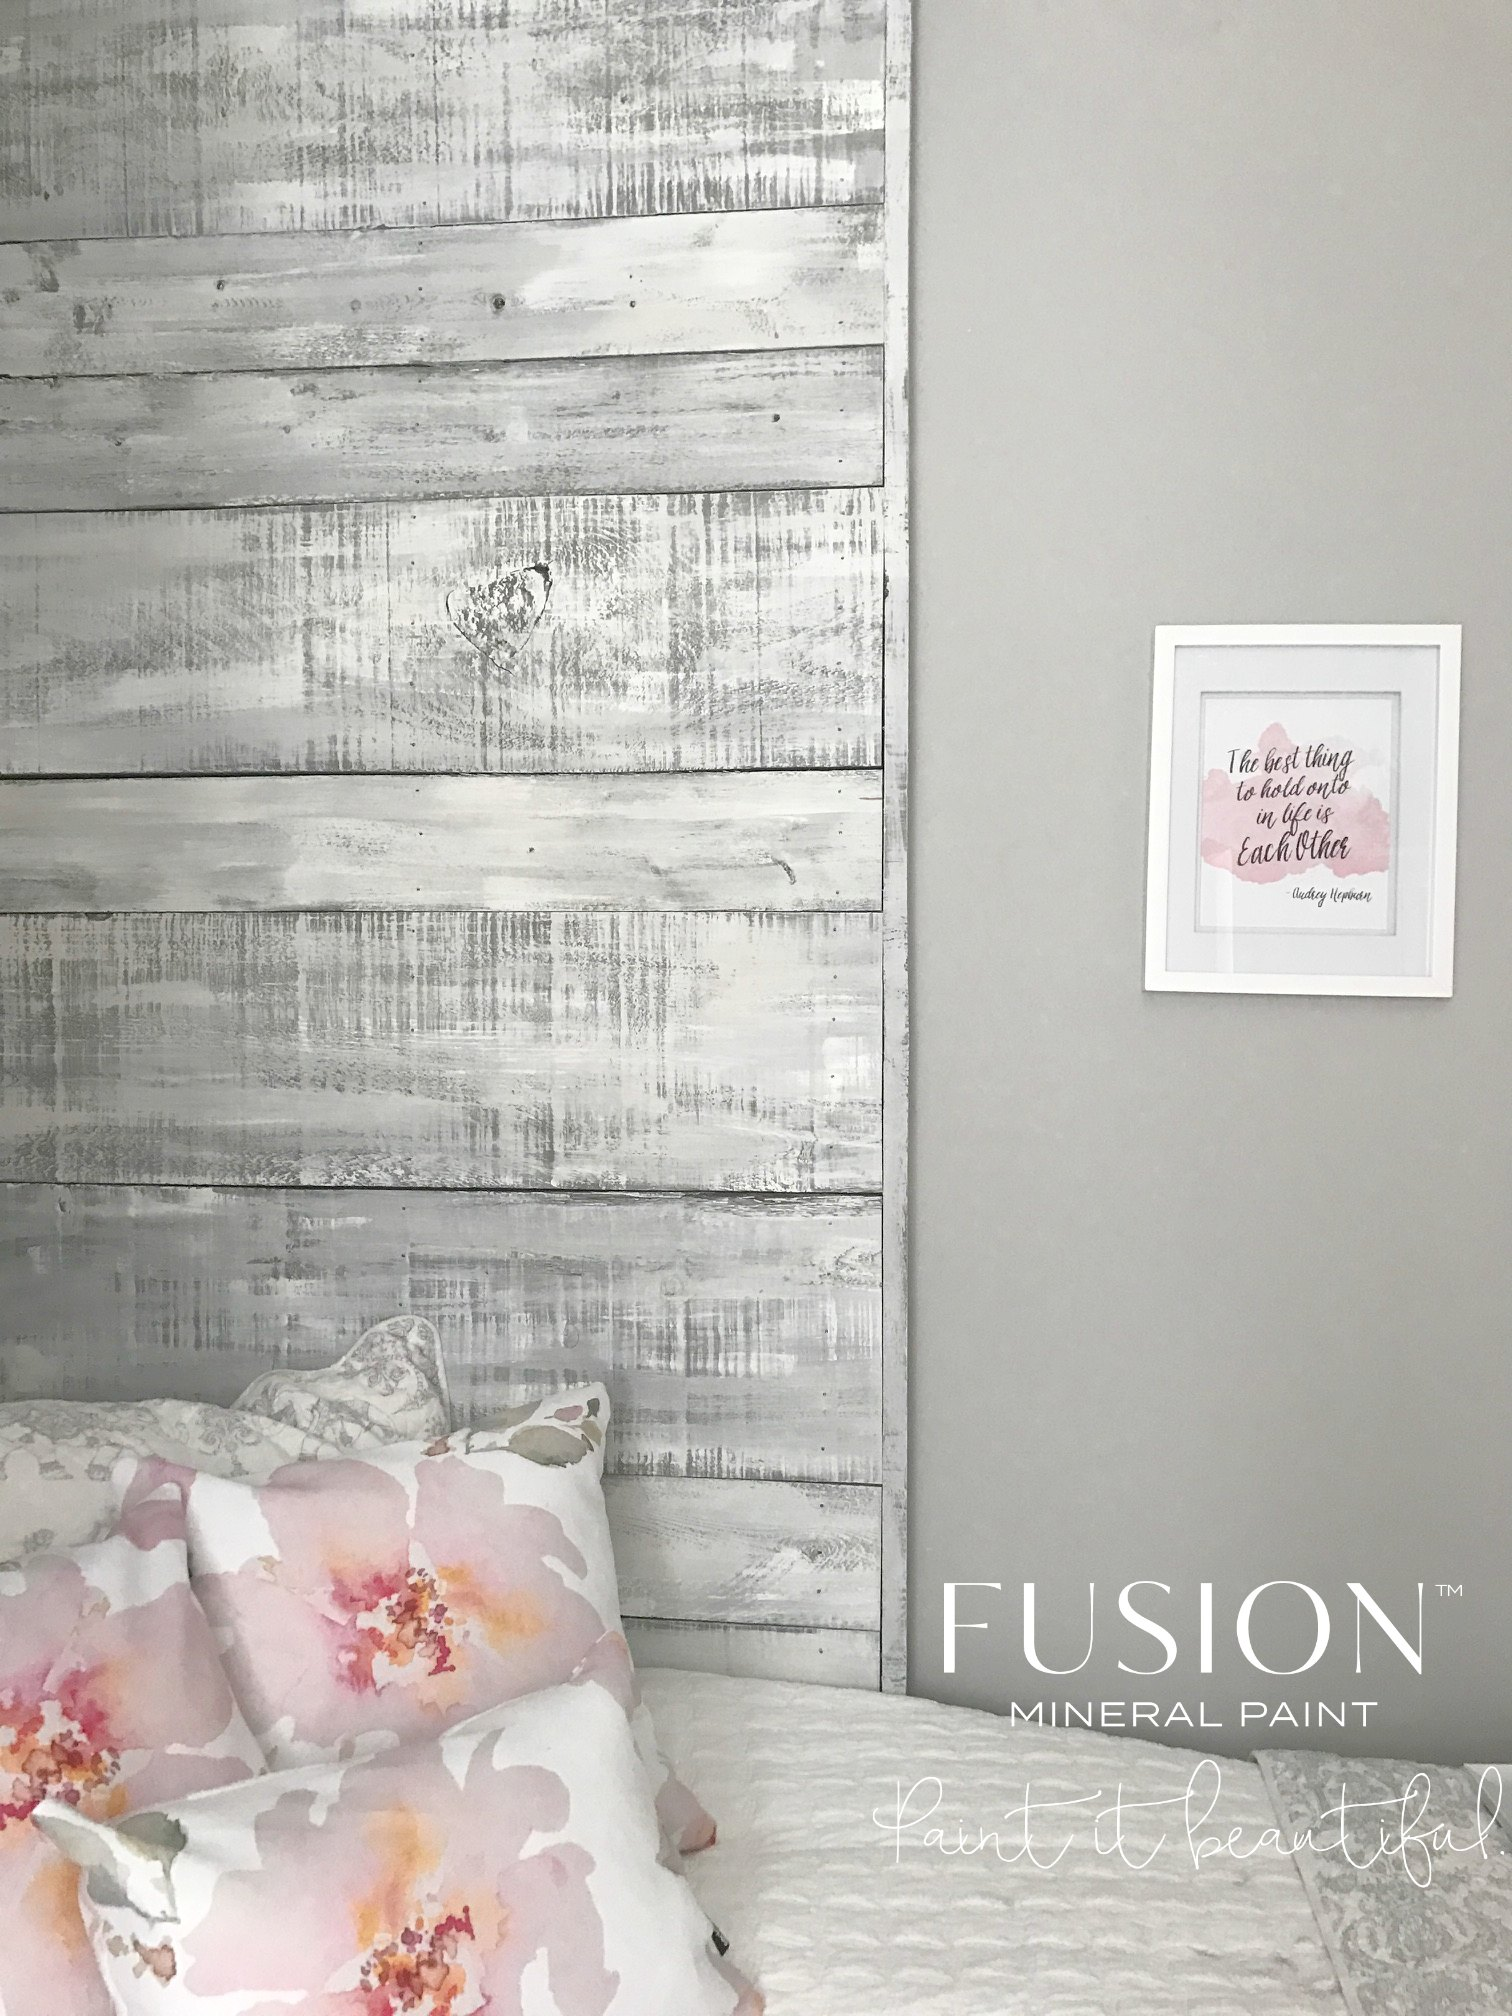 Driftwood Paint Finish using Fusion Mineral Paint Shabby Chic and beautiful floral accent pillows by Craftberry Bush give this soft sophisticated farmhouse look.